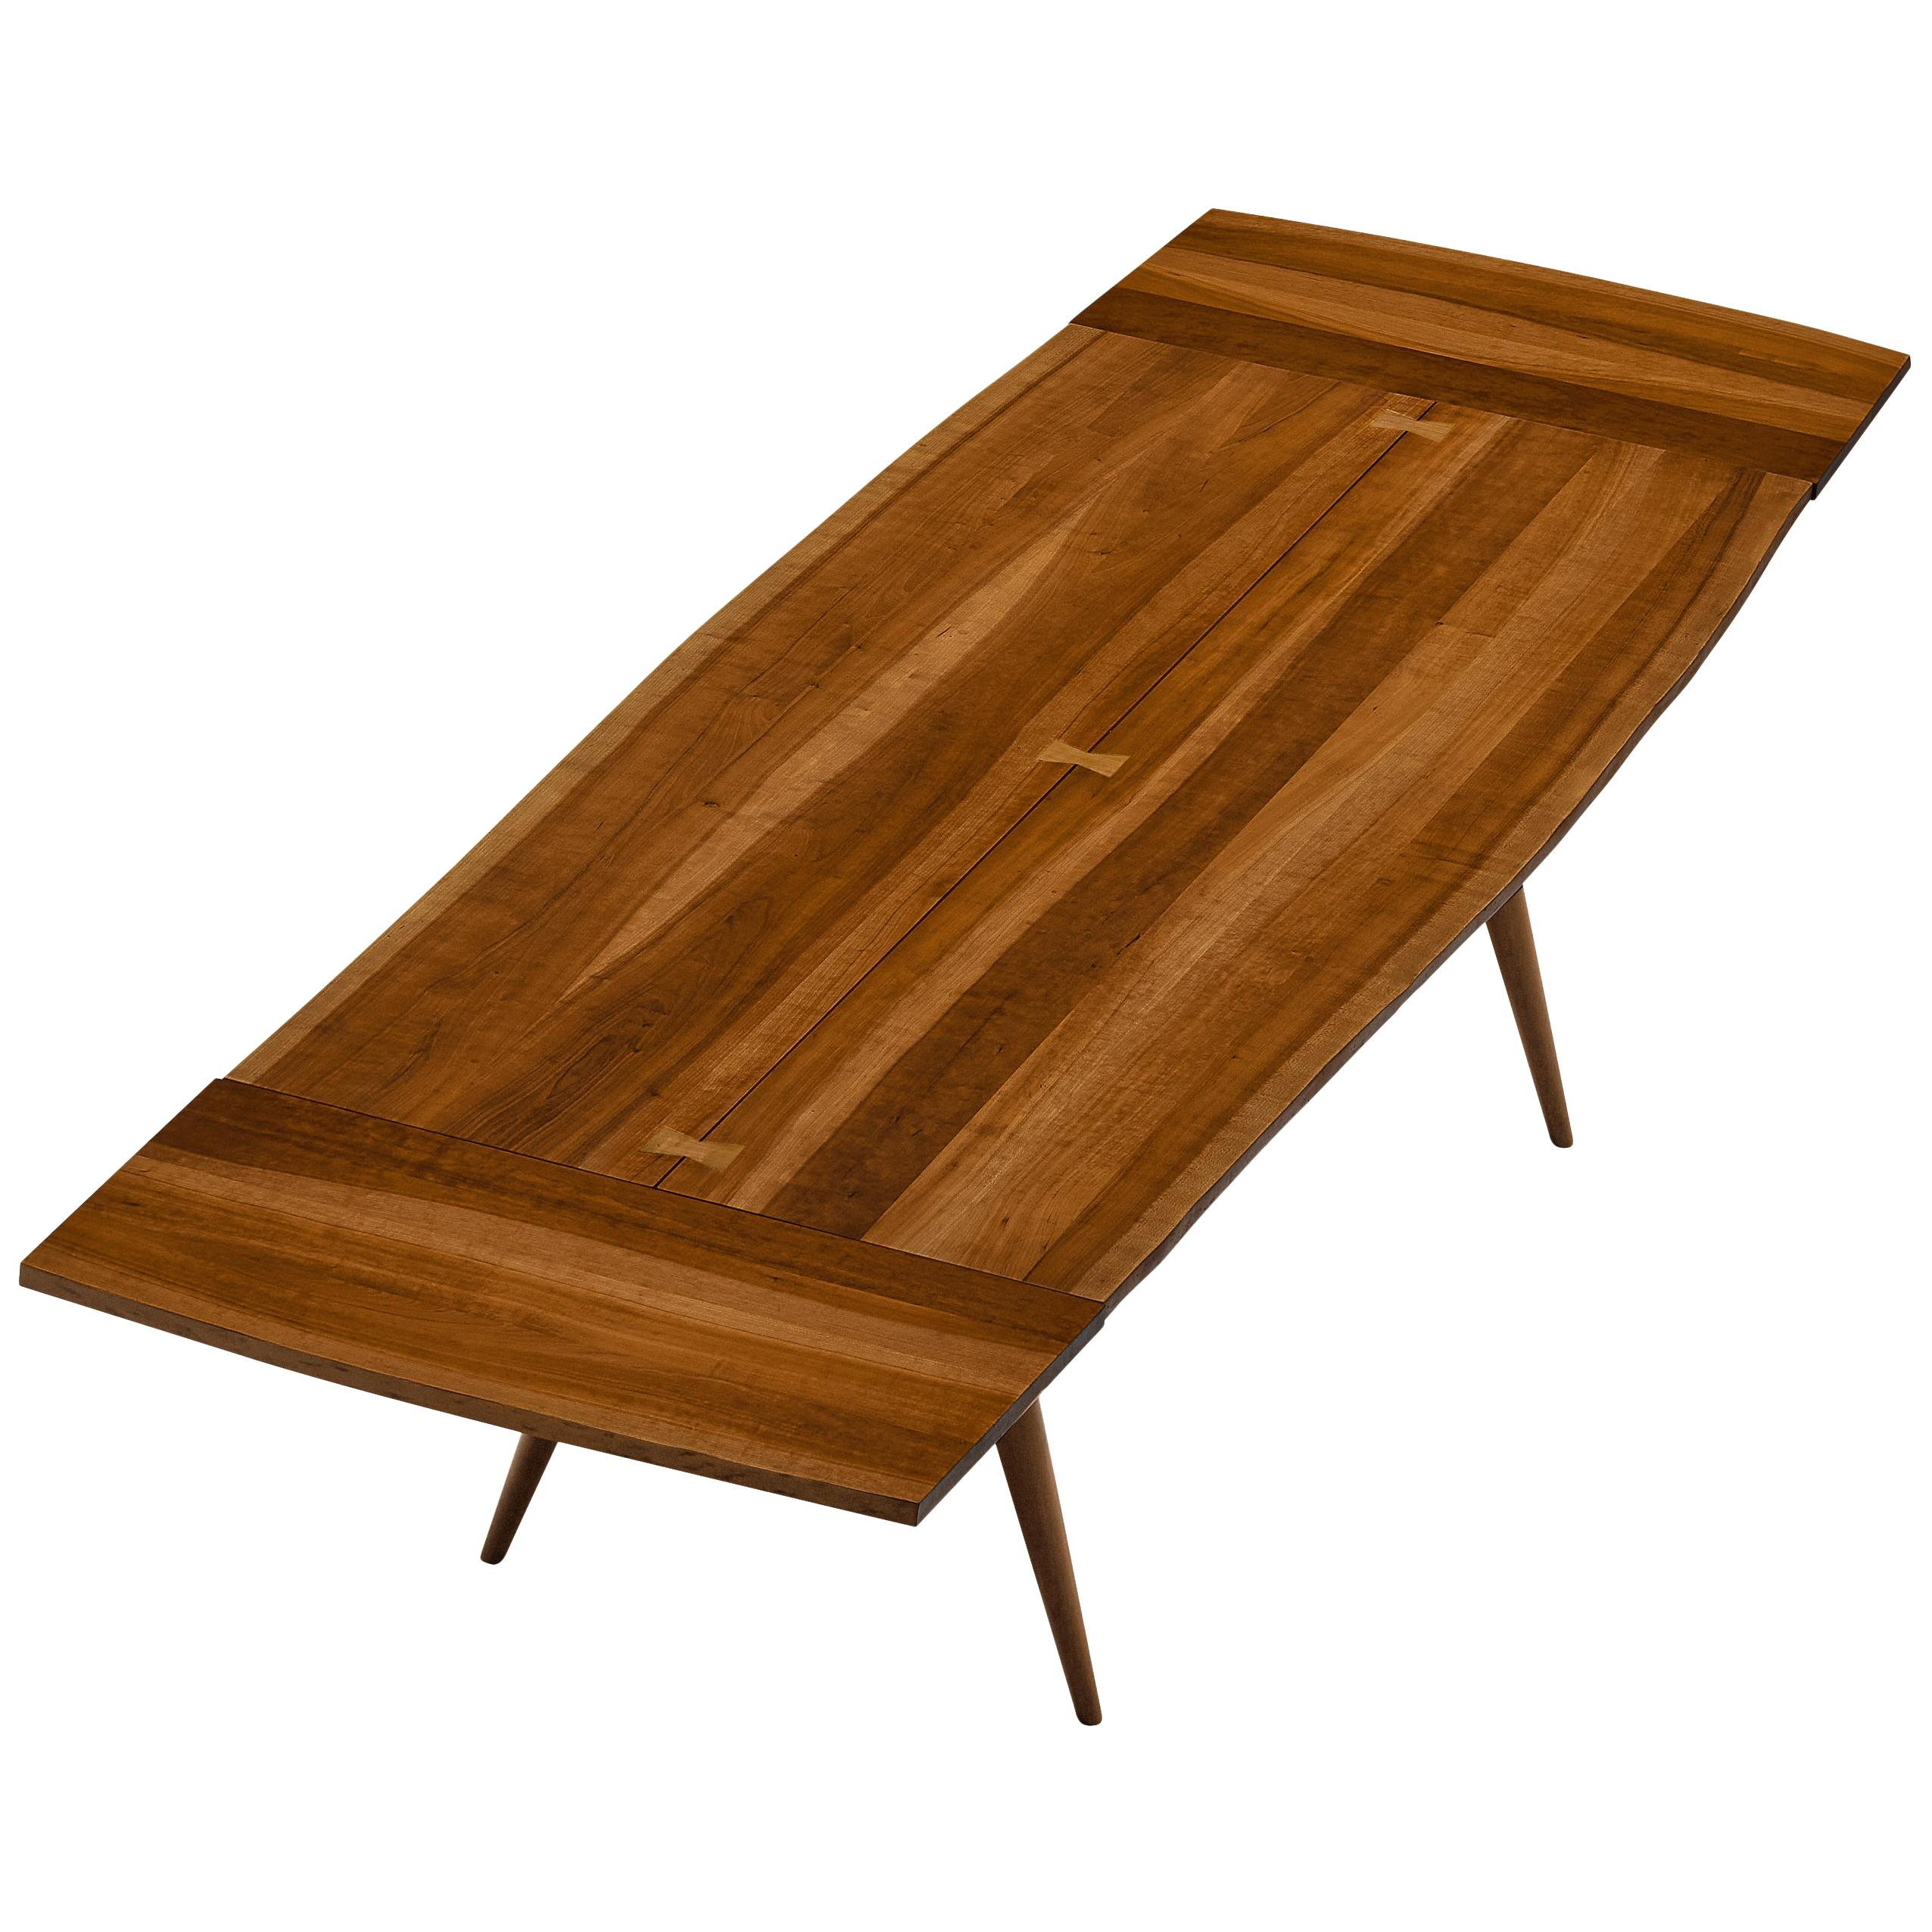 Large Extendable George Nakashima Dining Table in Cherry